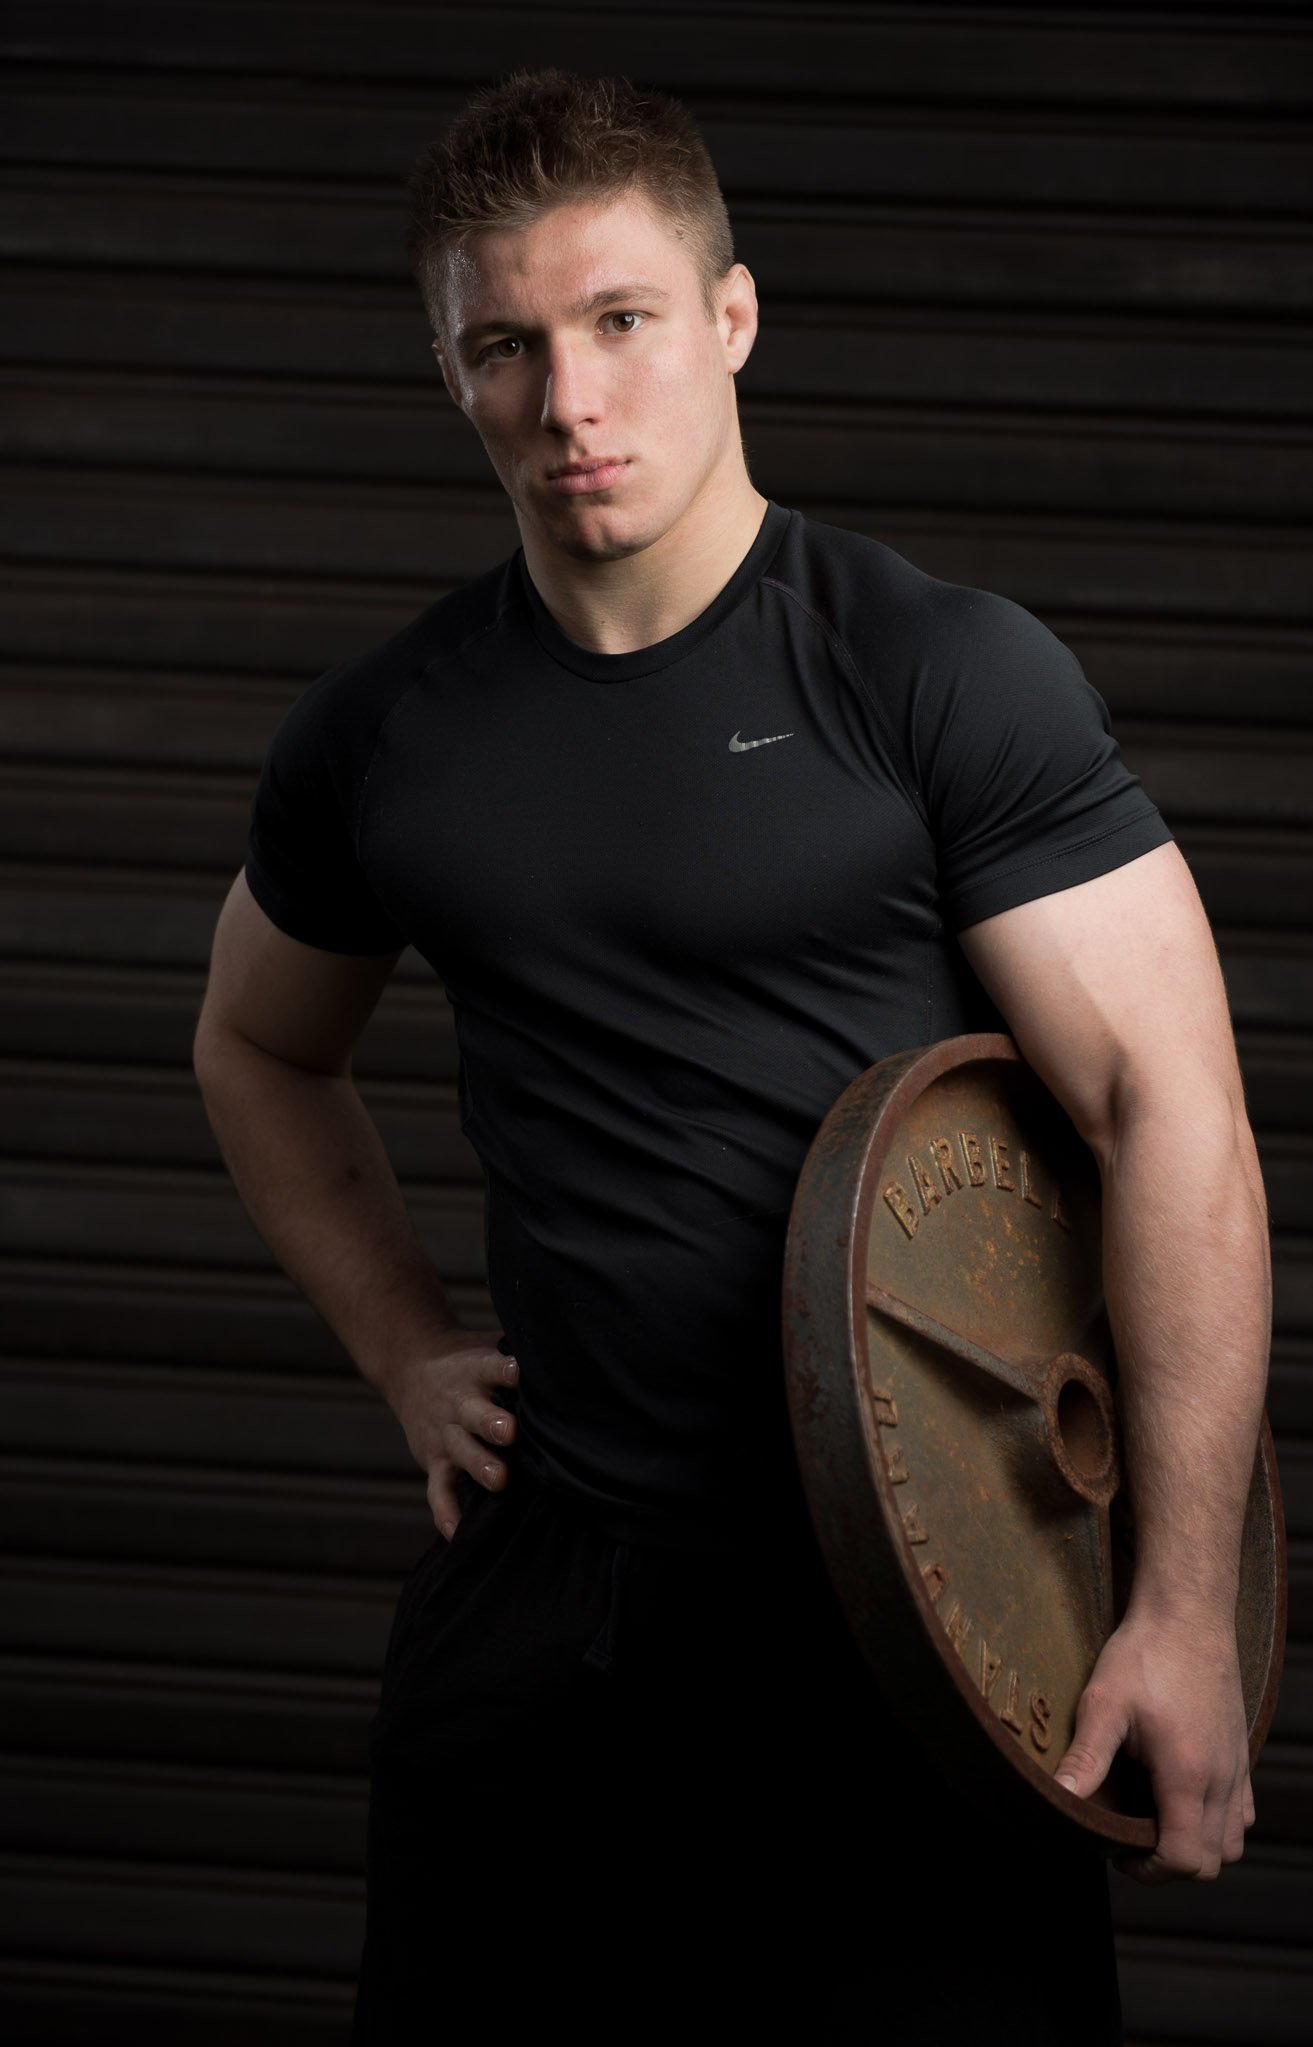 Harrison Melbourne's judo and fitness model